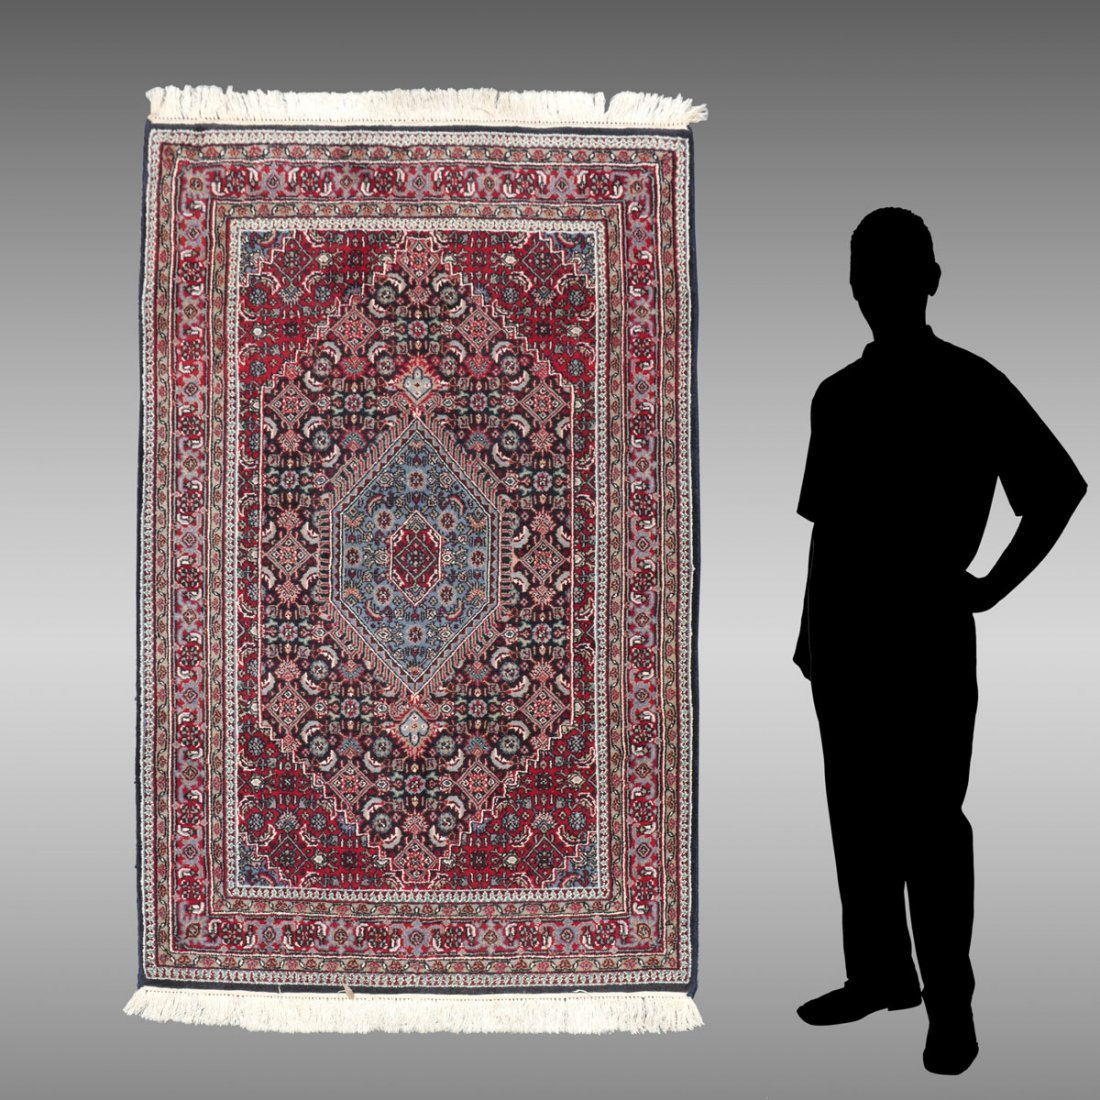 INDO-PERSIAN BIJAR HAND KNOTTED WOOL RUG, 4